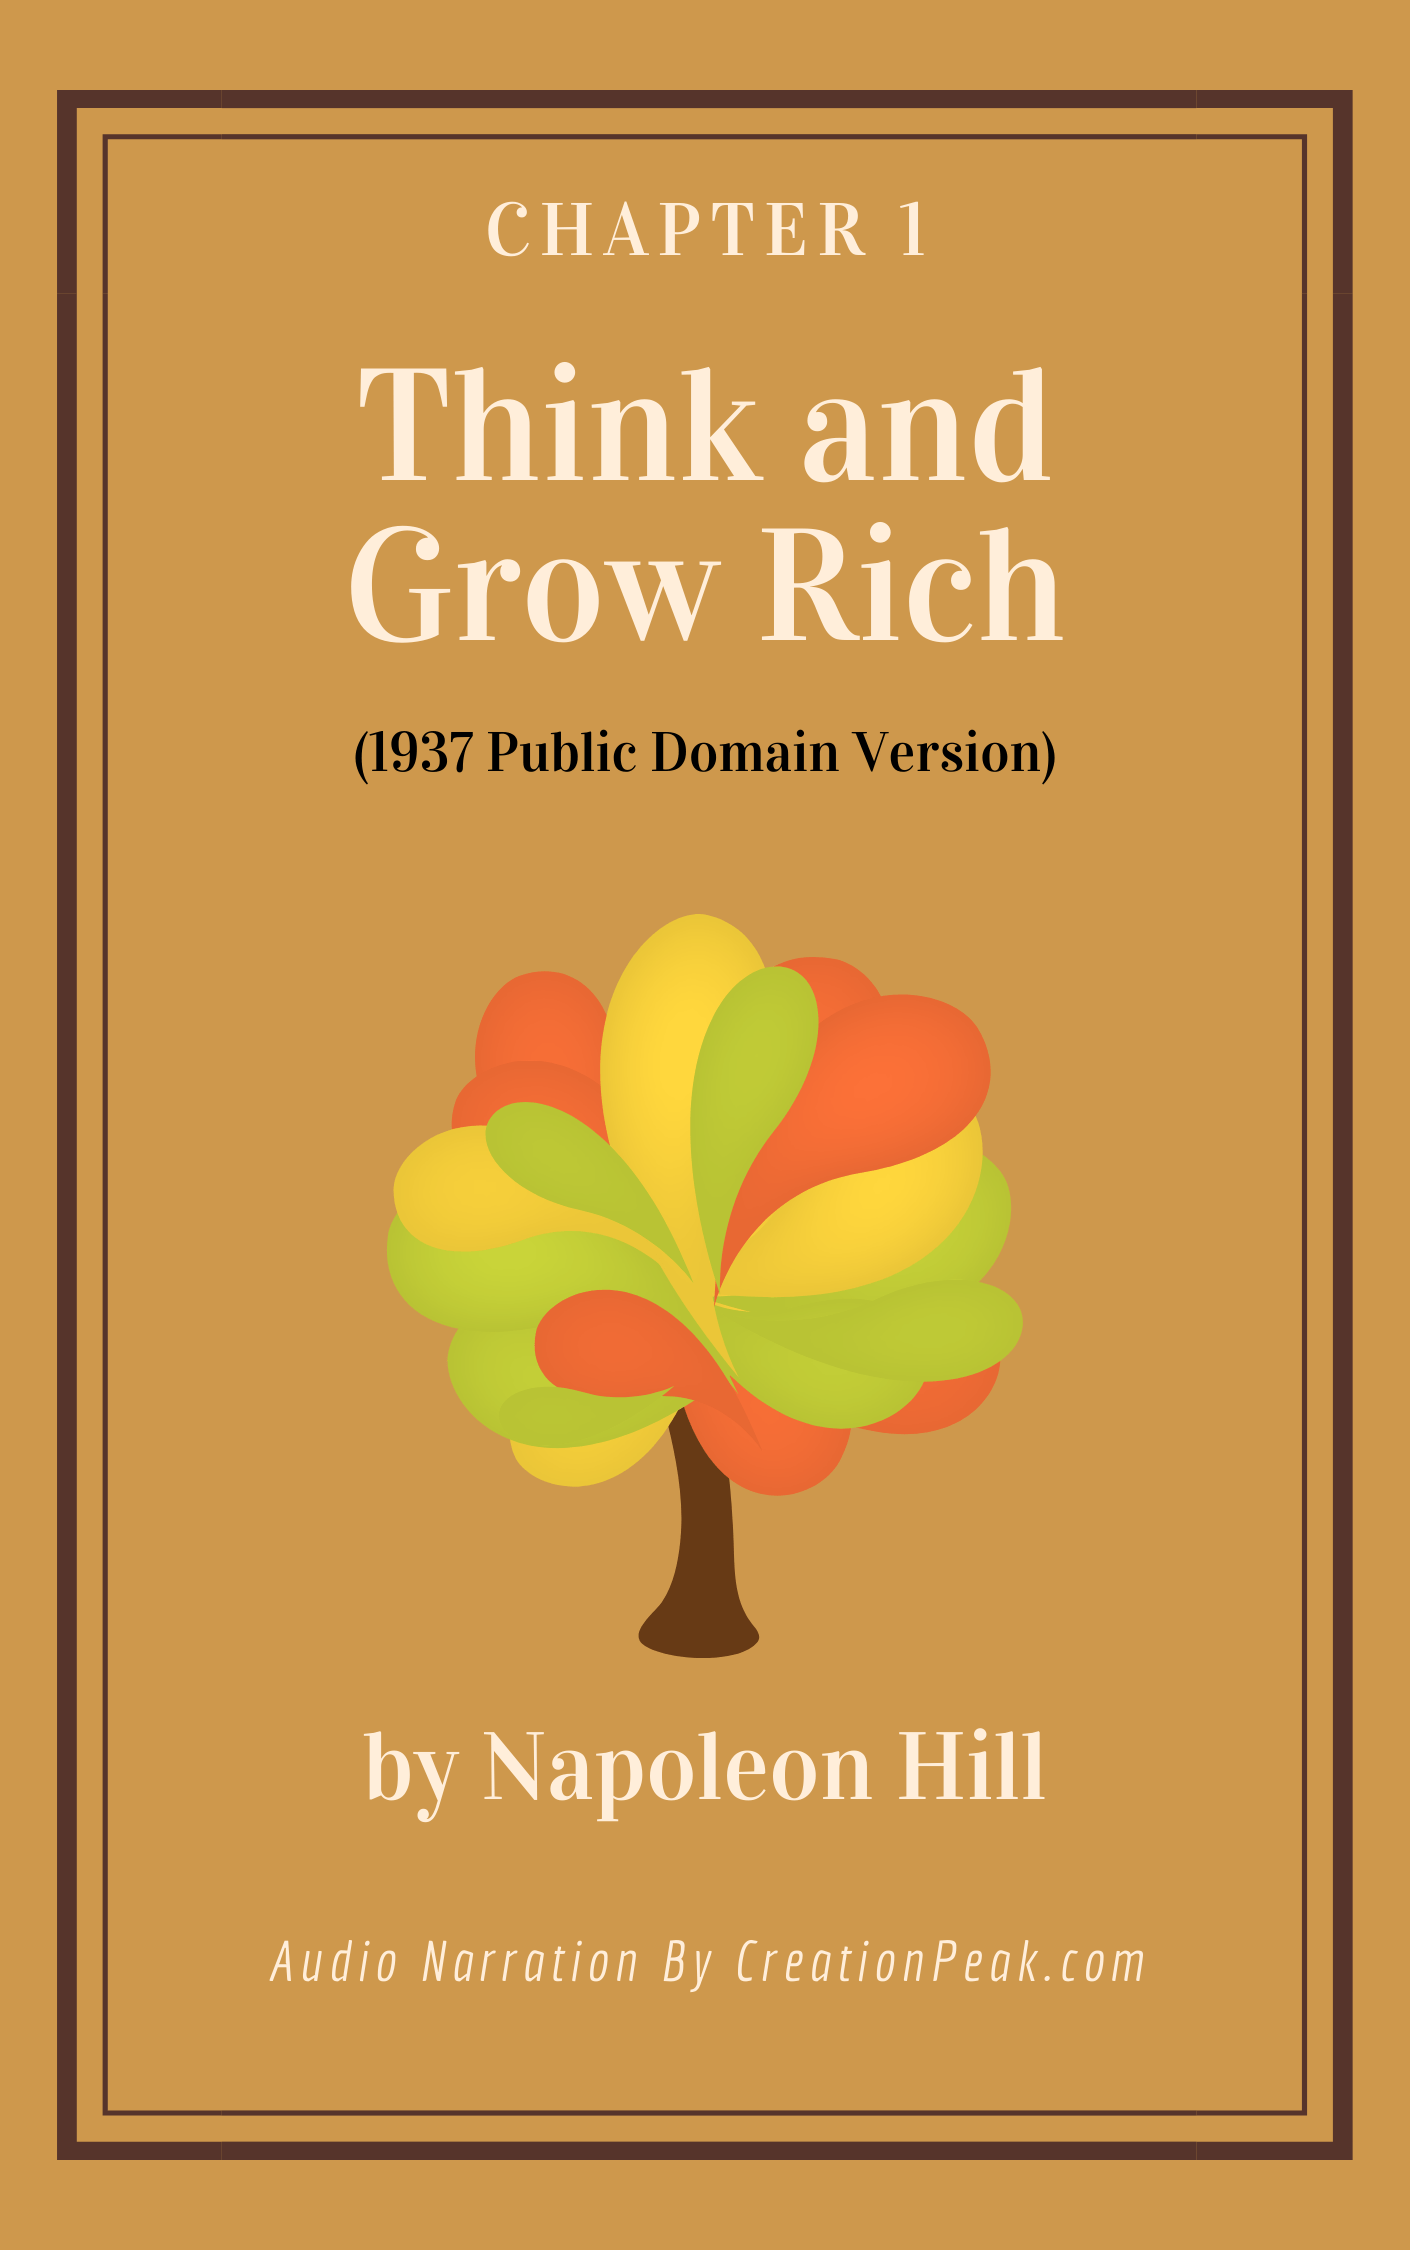 Think and Grow Rich Chapter 1 Audio book cover